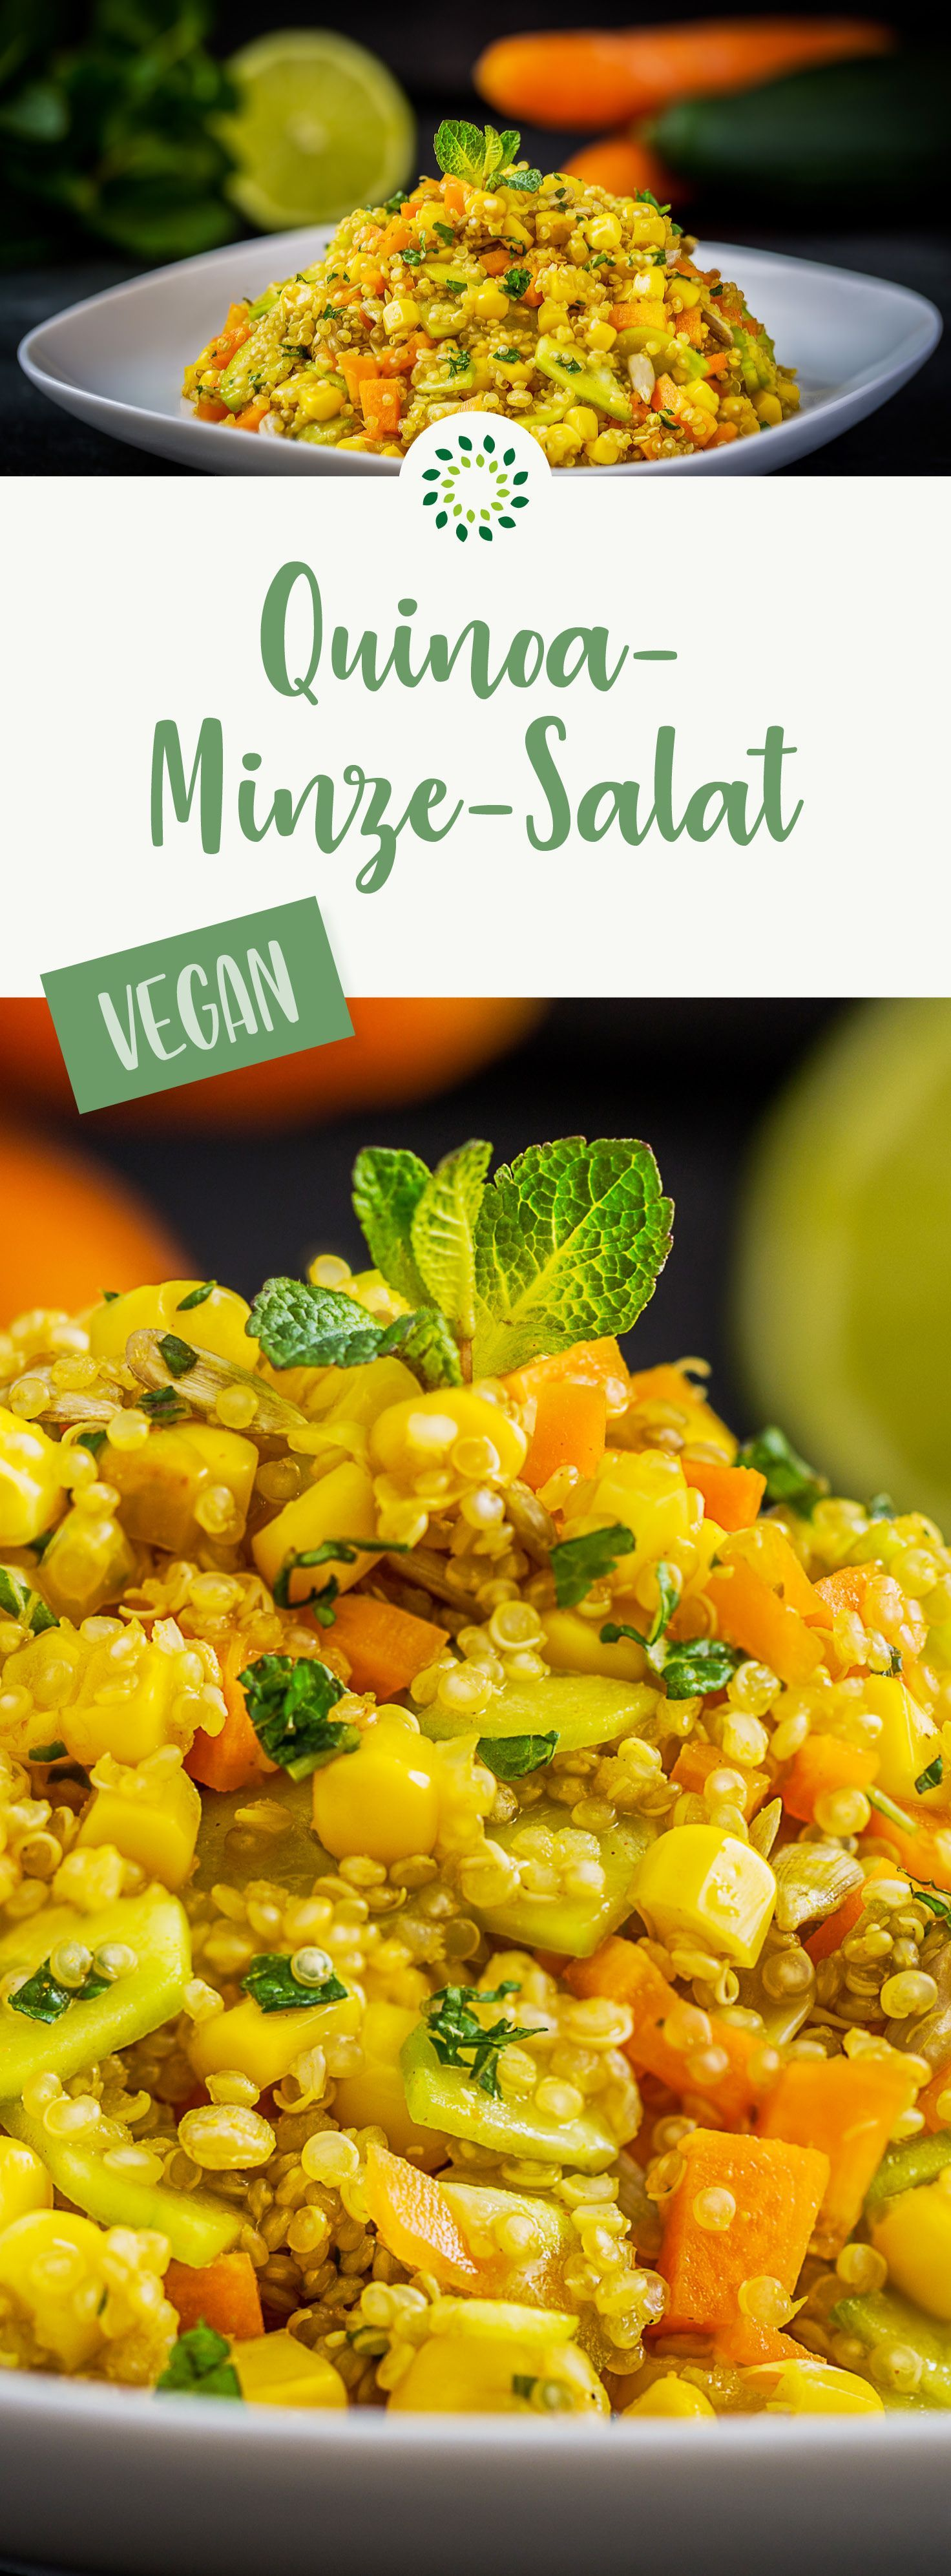 Quinoa salad with mixed vegetables and mint -  Quinoa-mint salad: Together with a little lime juice